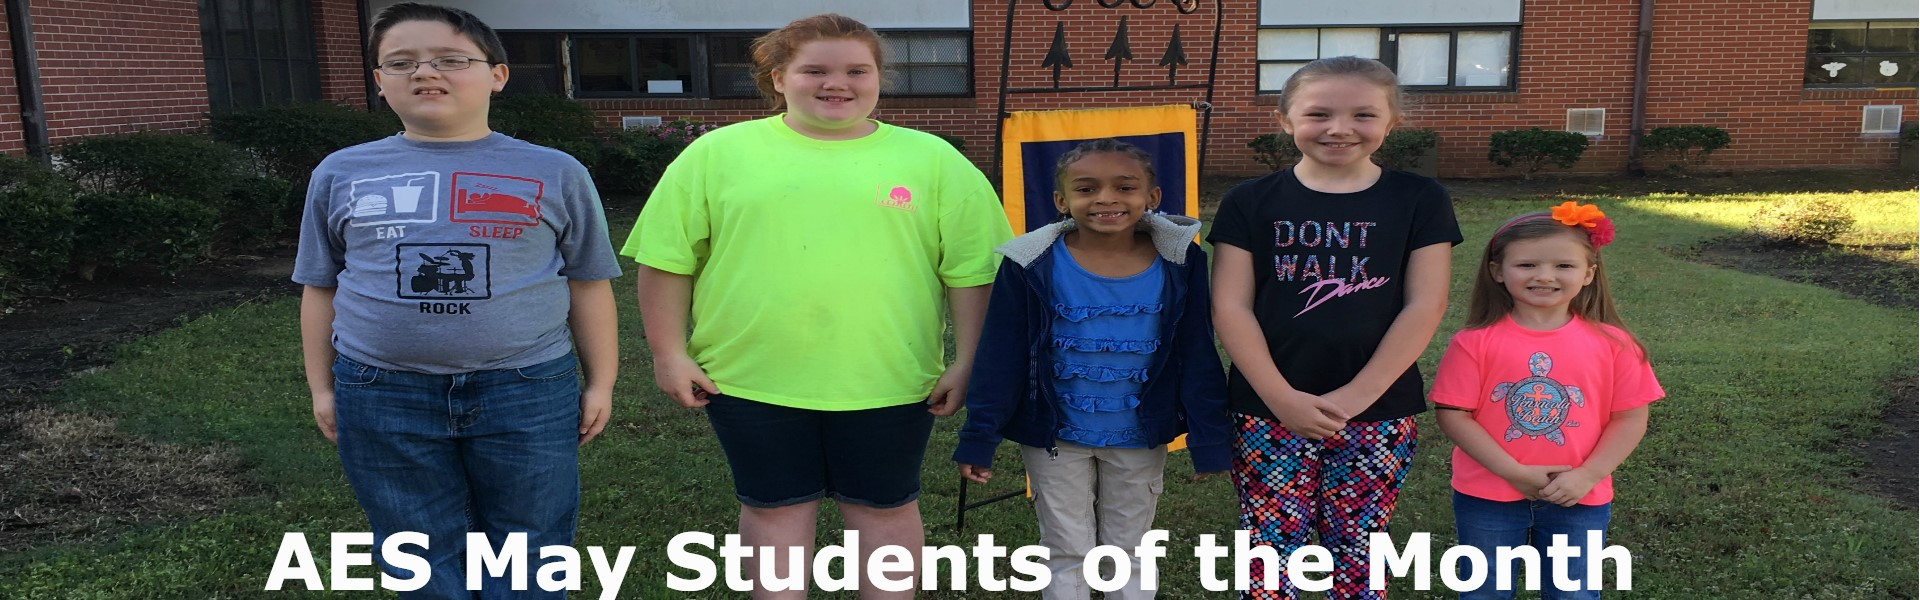 AES May Students of the Month